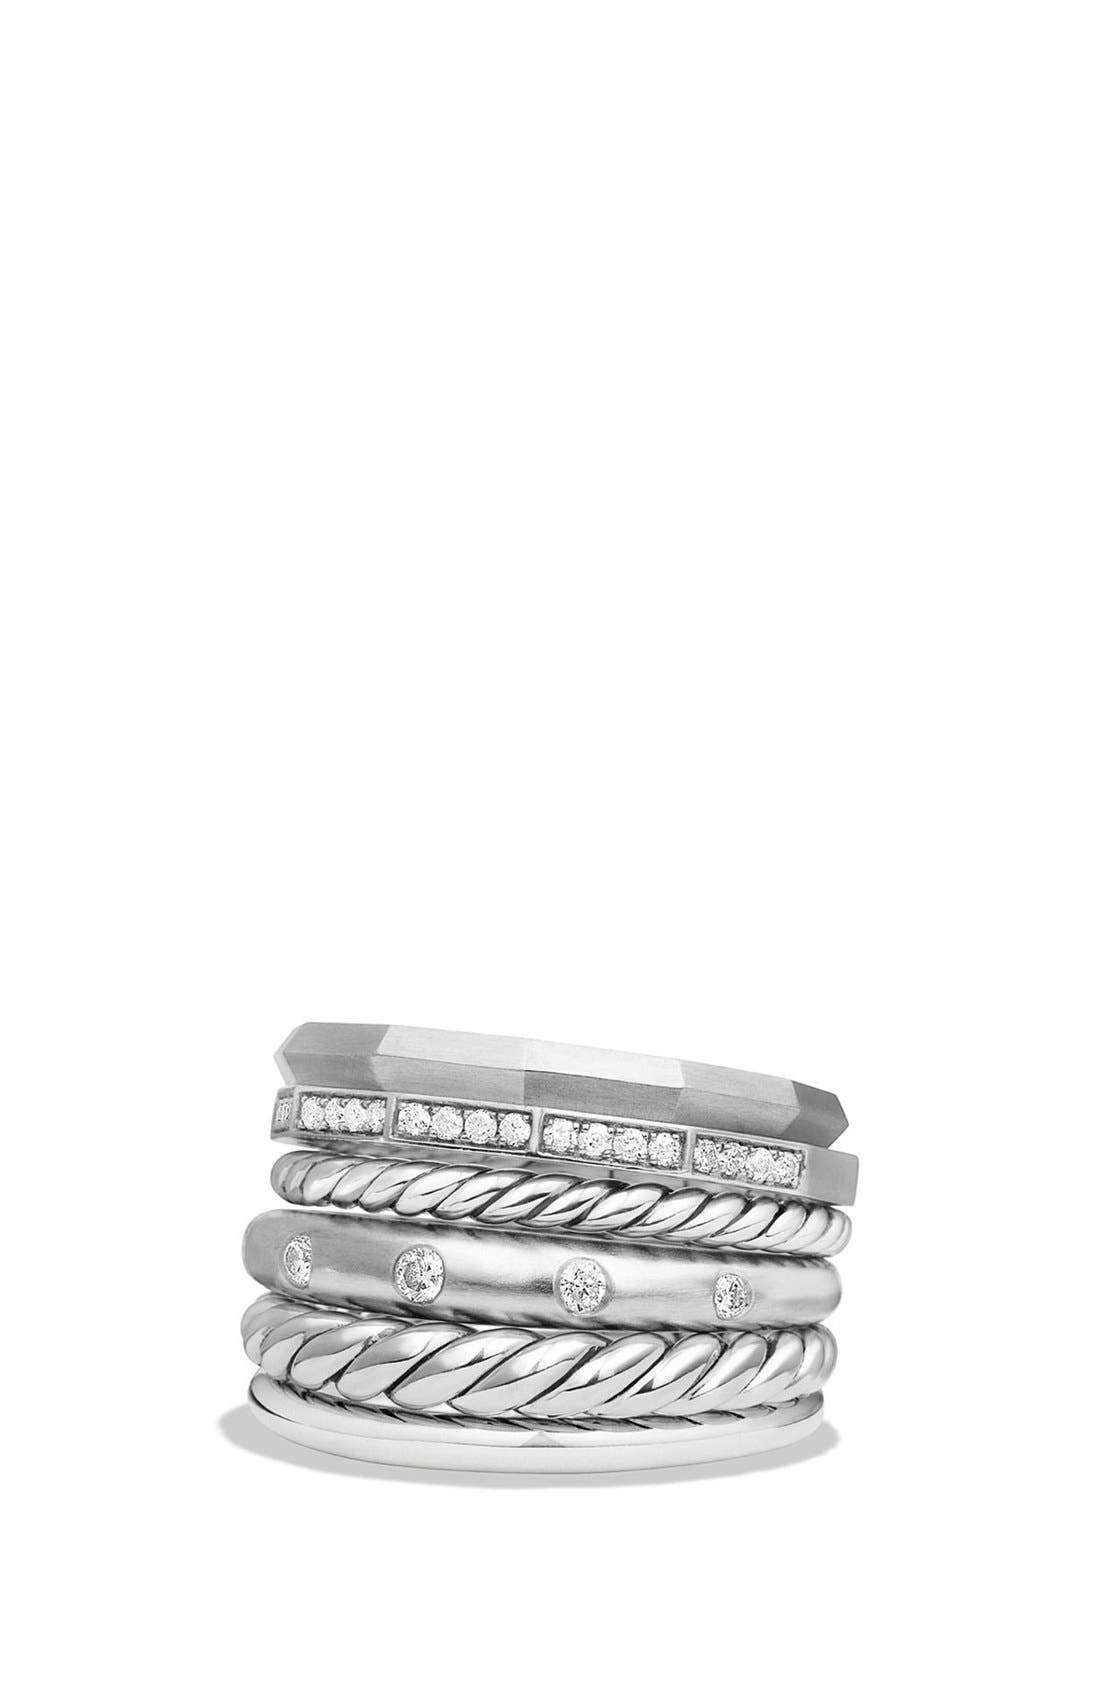 DAVID YURMAN Stax Wide Diamond Ring